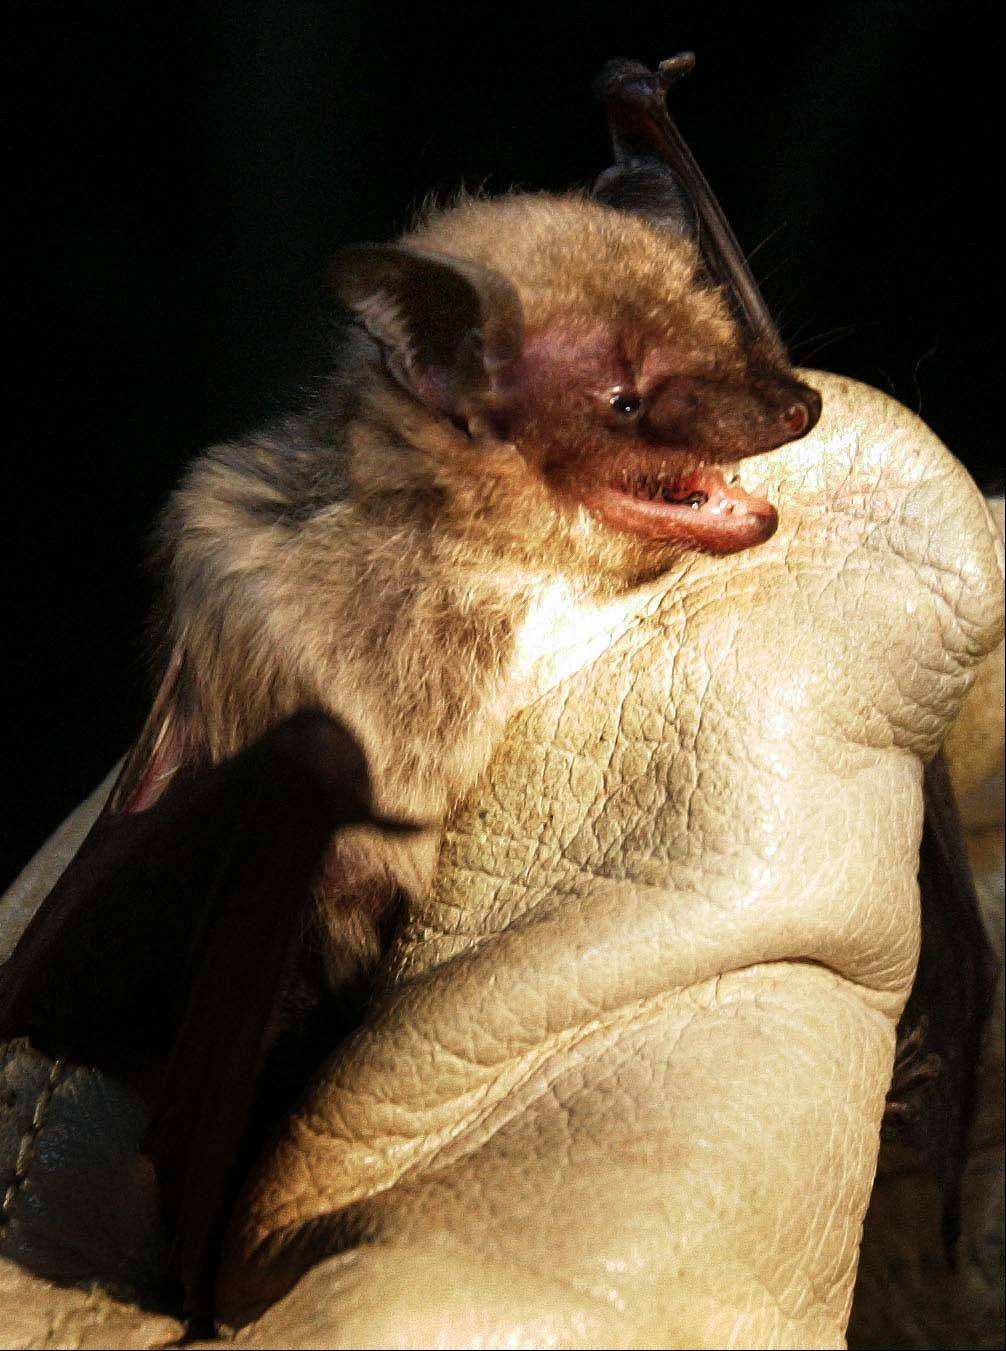 A brown bat is one of the types found in the Chicago suburbs.